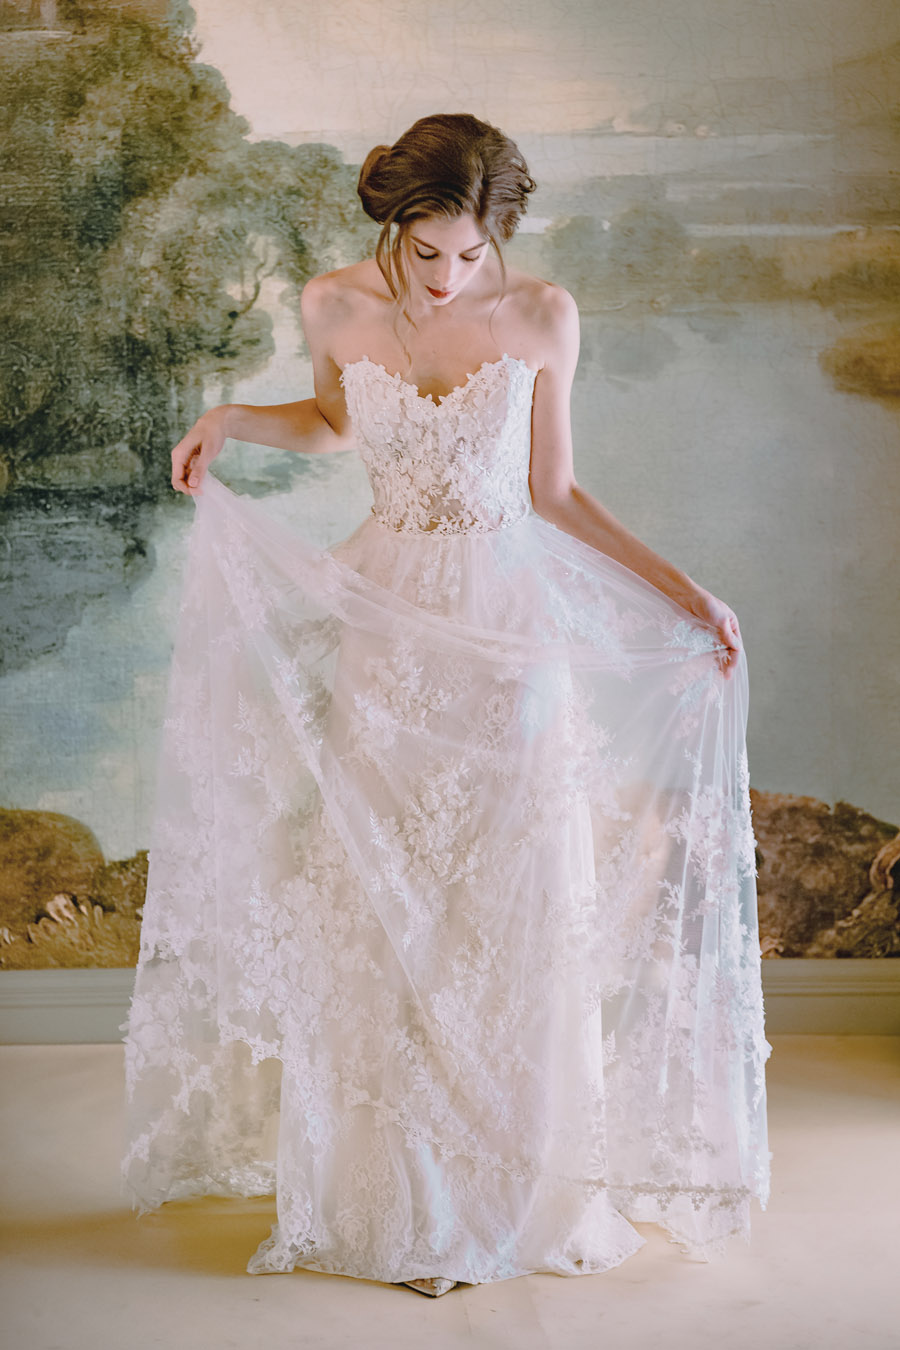 Claire Pettibone 2020 wedding dress ideas (19)